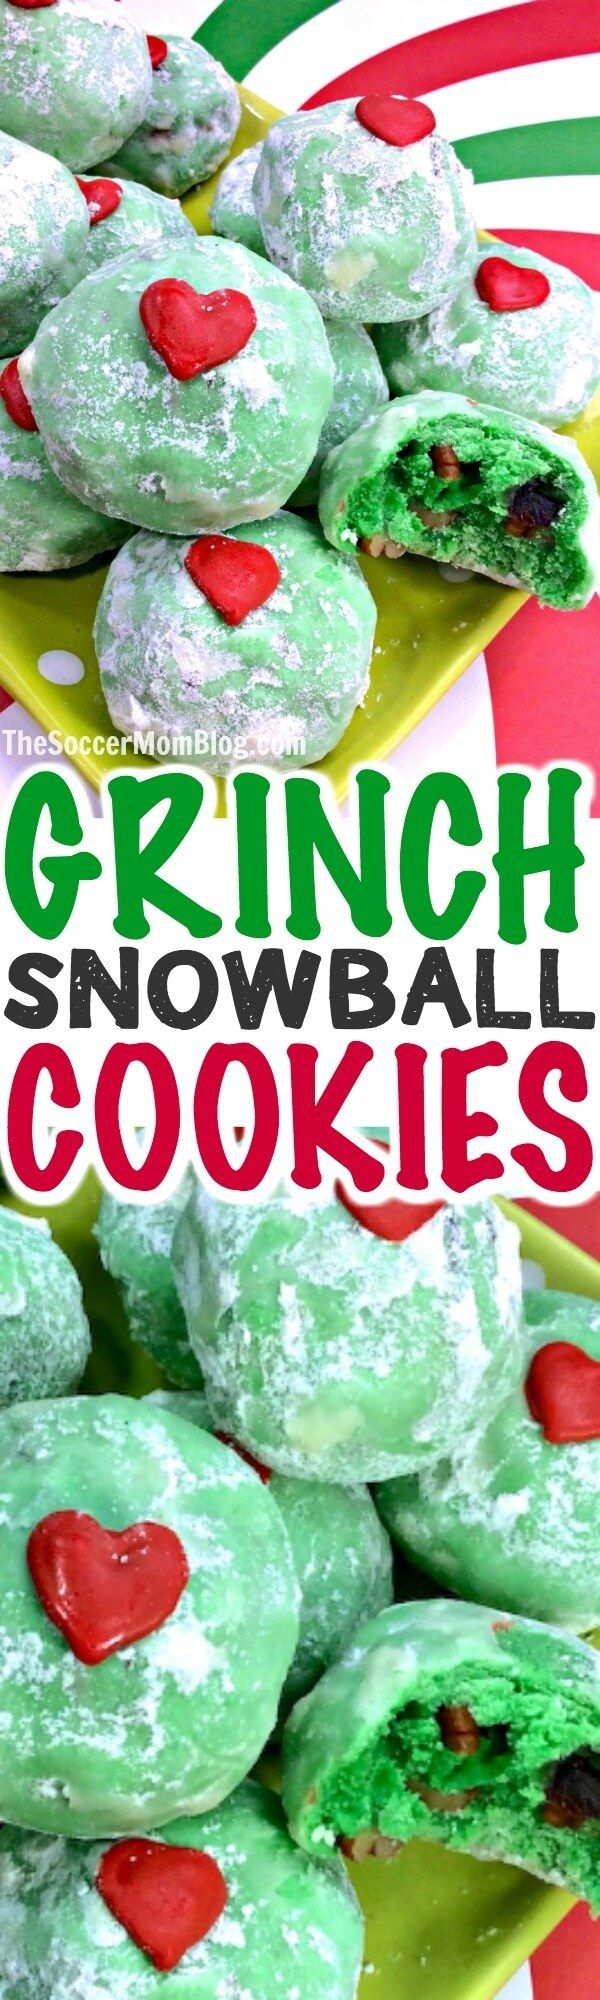 Grinch Cookies - Christmas Snowball Cookies